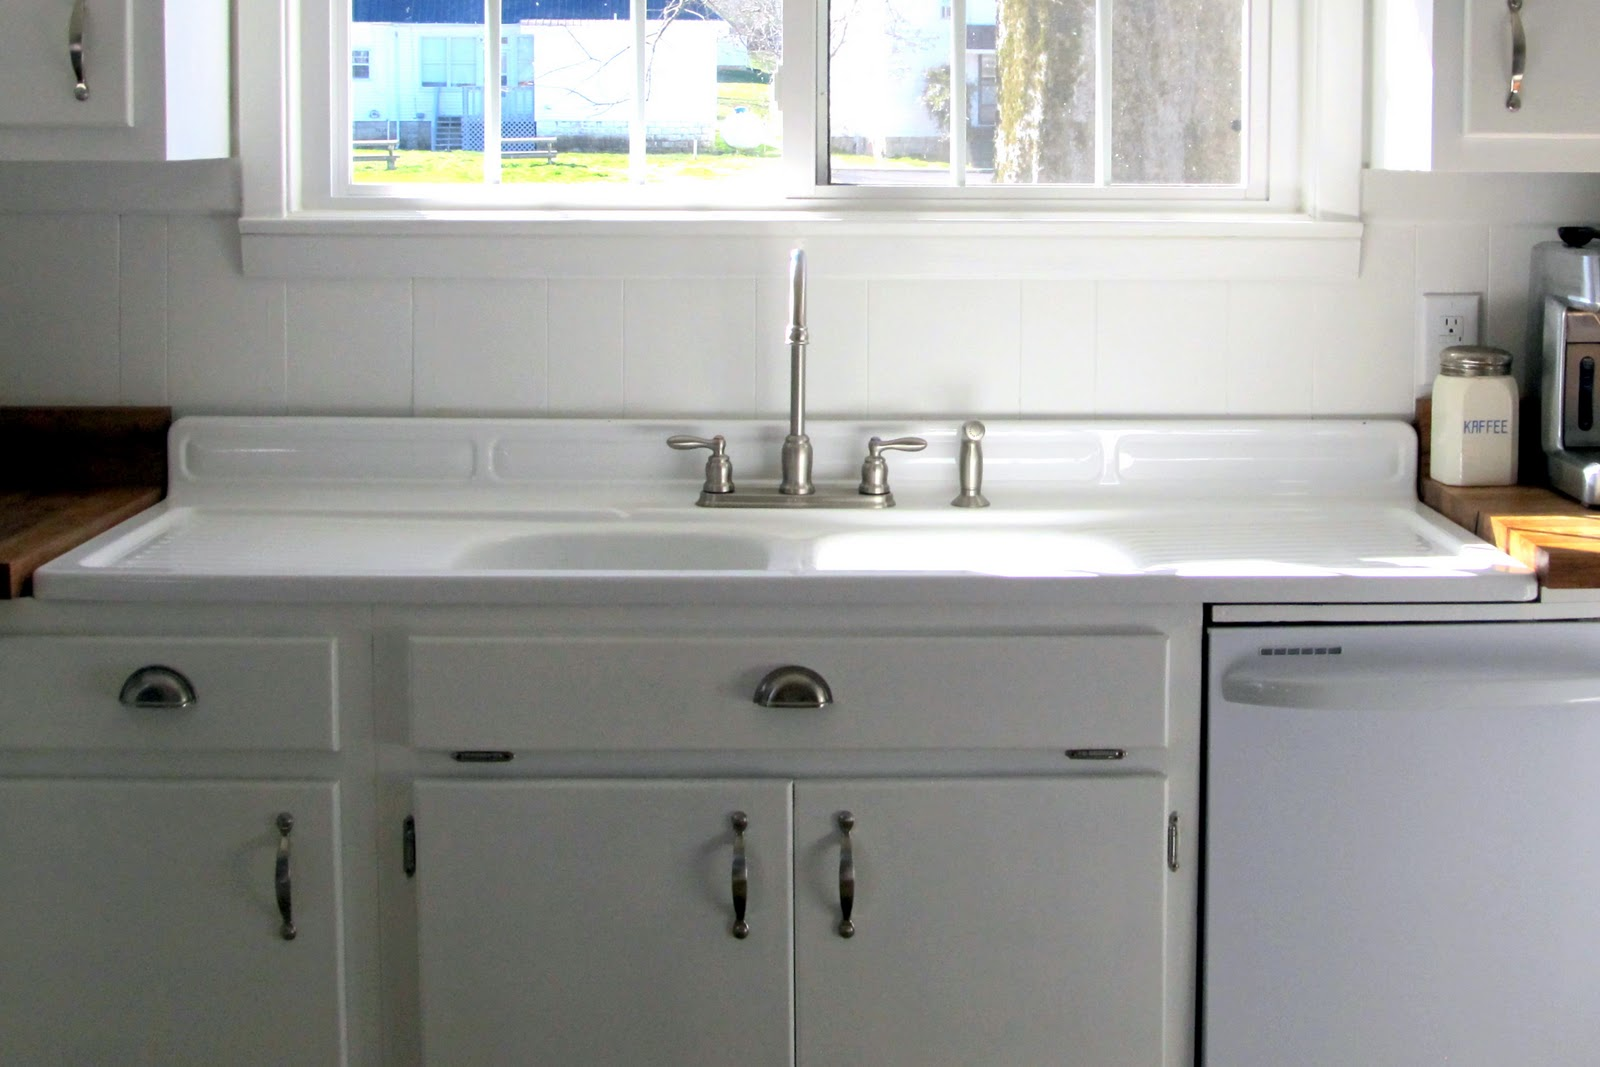 Farmhouse Kitchen Sink With Drainboard : Farmhouse Kitchen Sink With Drainboard Car Interior Design